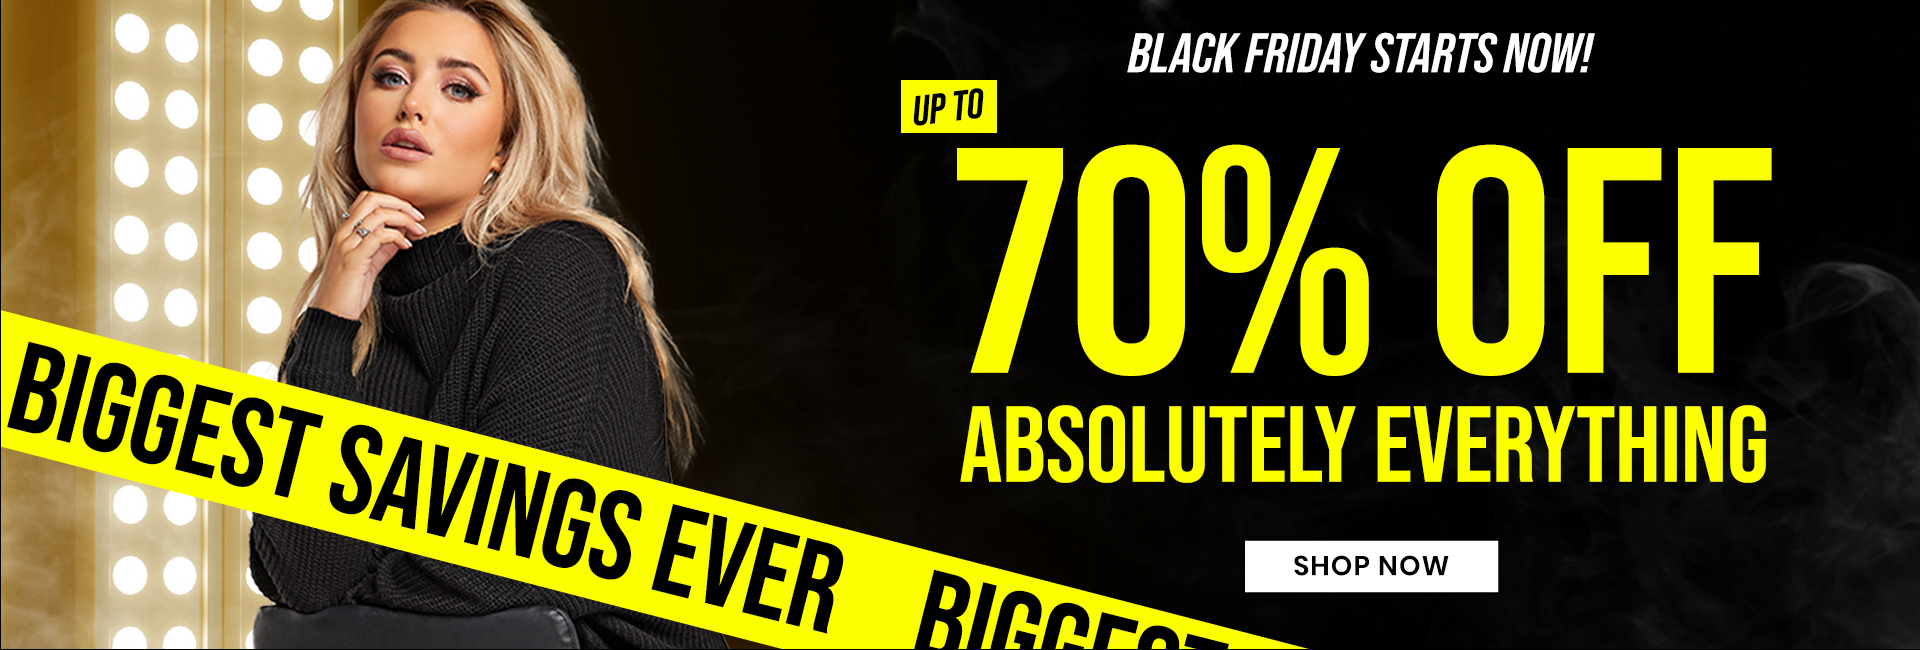 Black Friday is here - up to 70% off